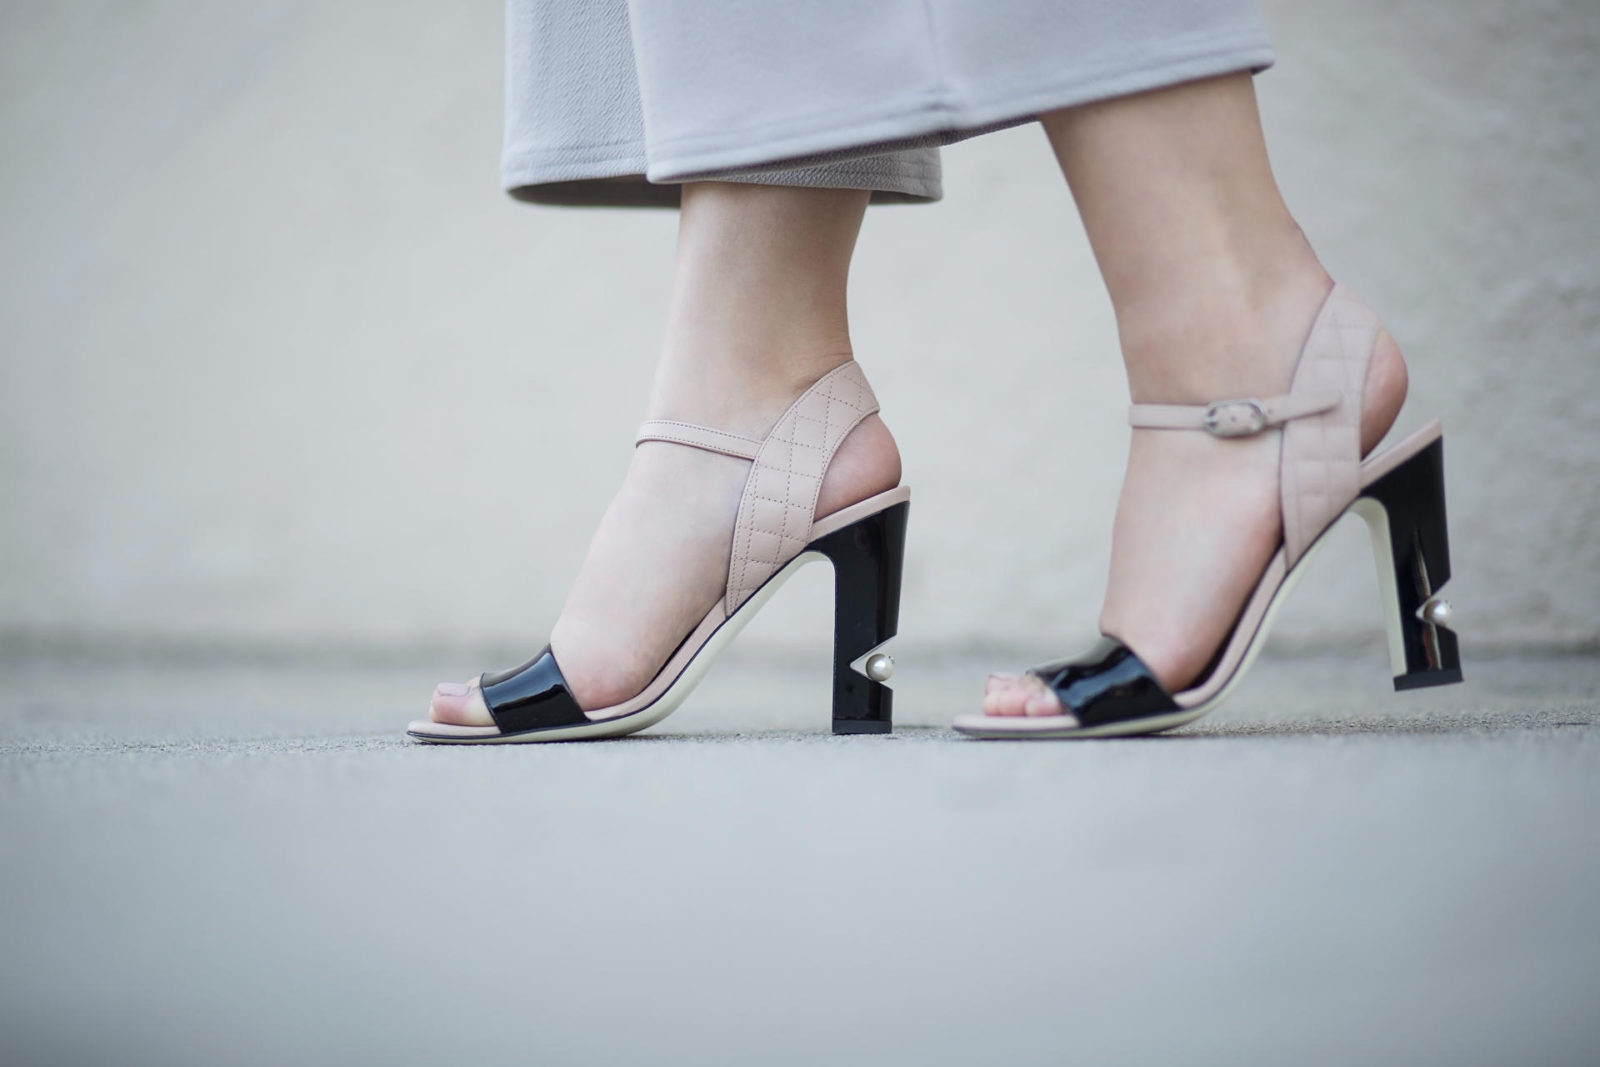 serein-wu-chanel-heels